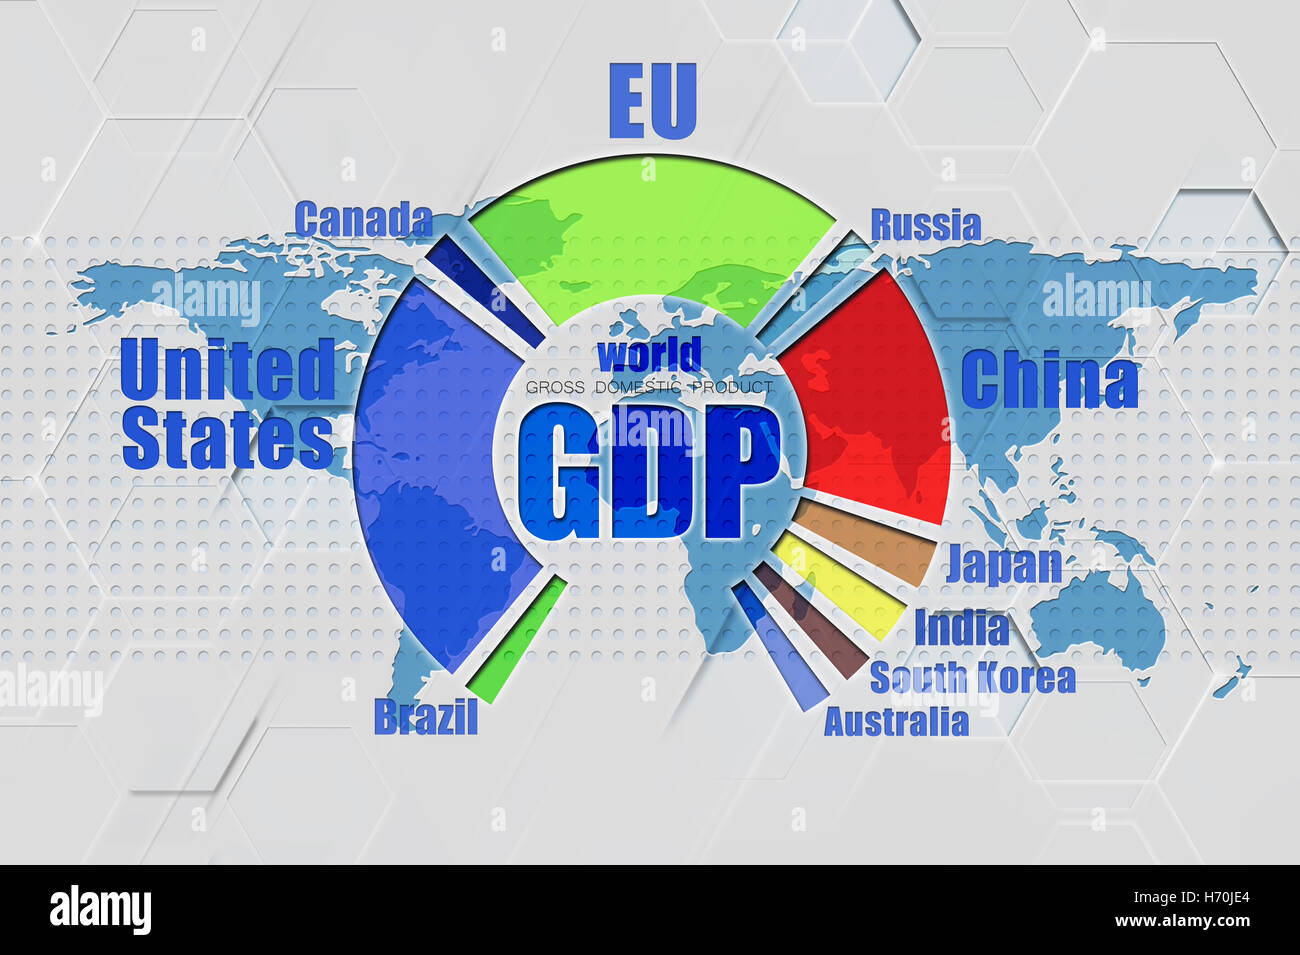 Global economy, GDP by countries. GDP for US, EU, China, Canada Japan, Australia, Brazil - Stock Image